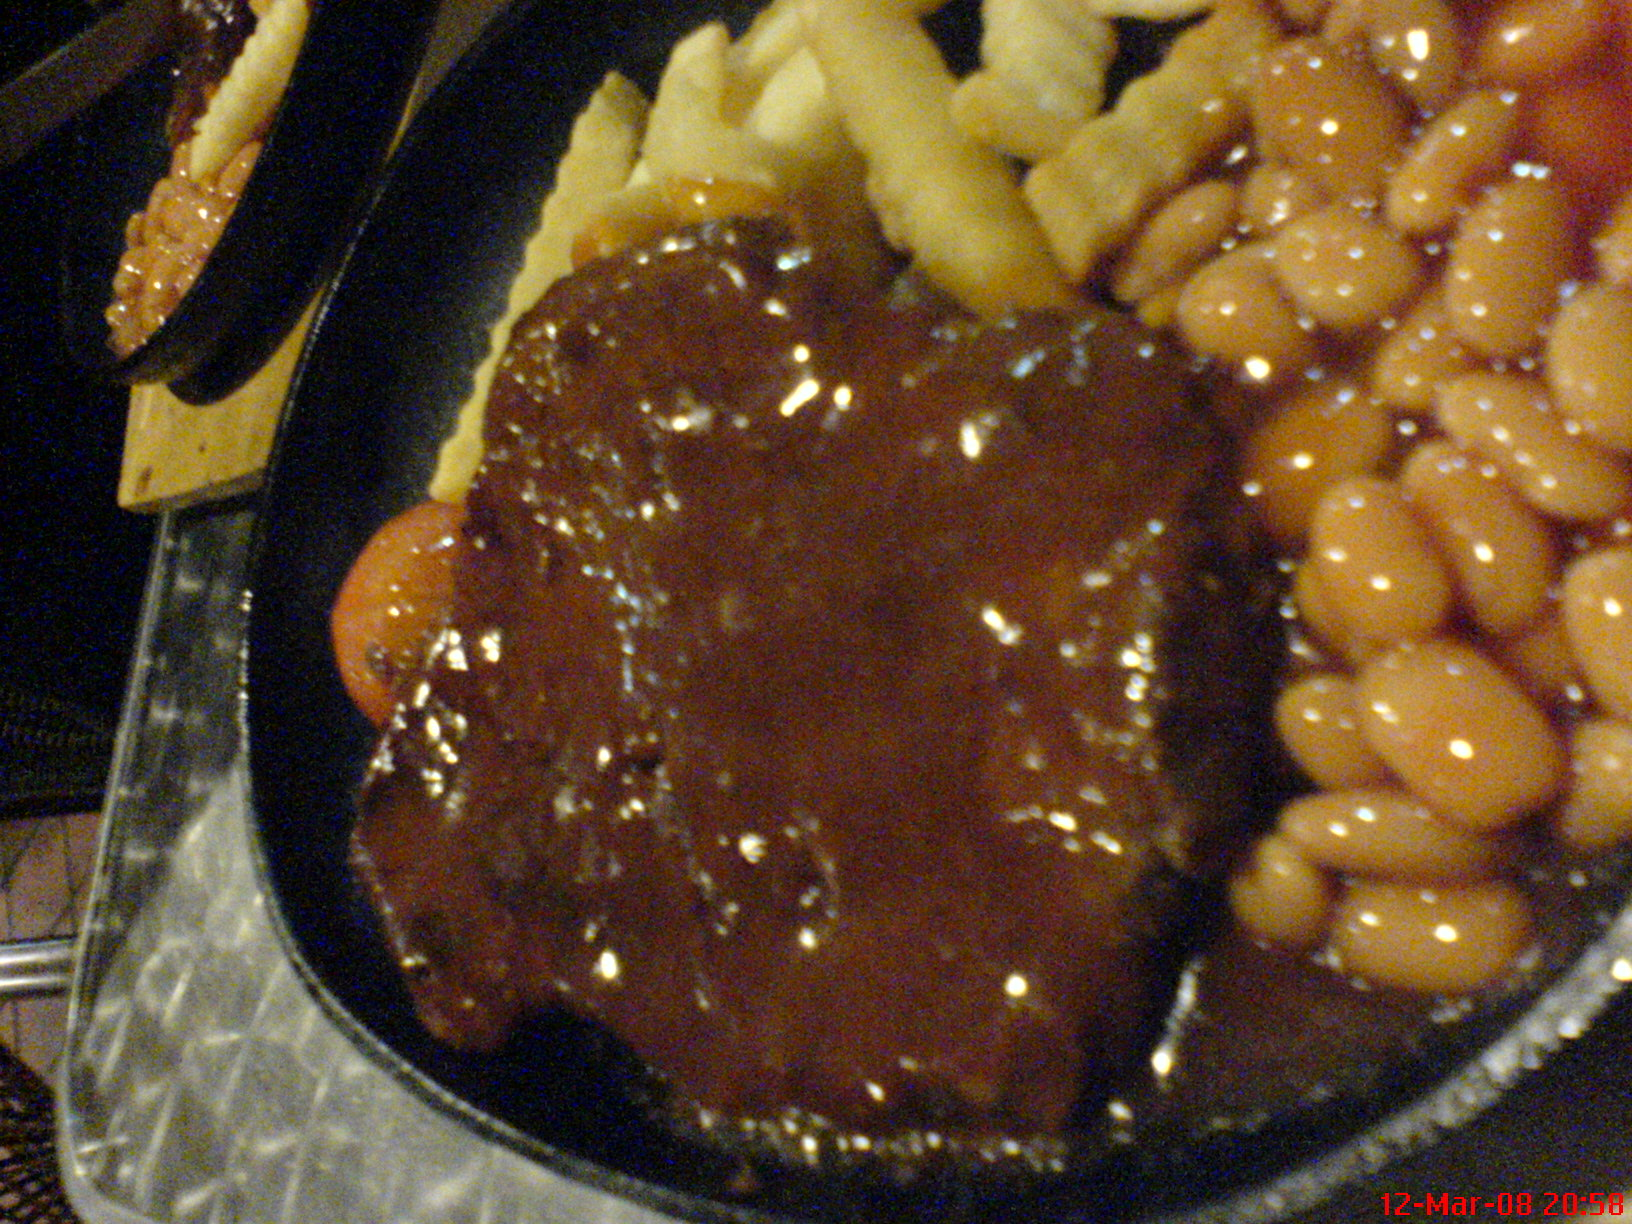 sizzling sirloin steak